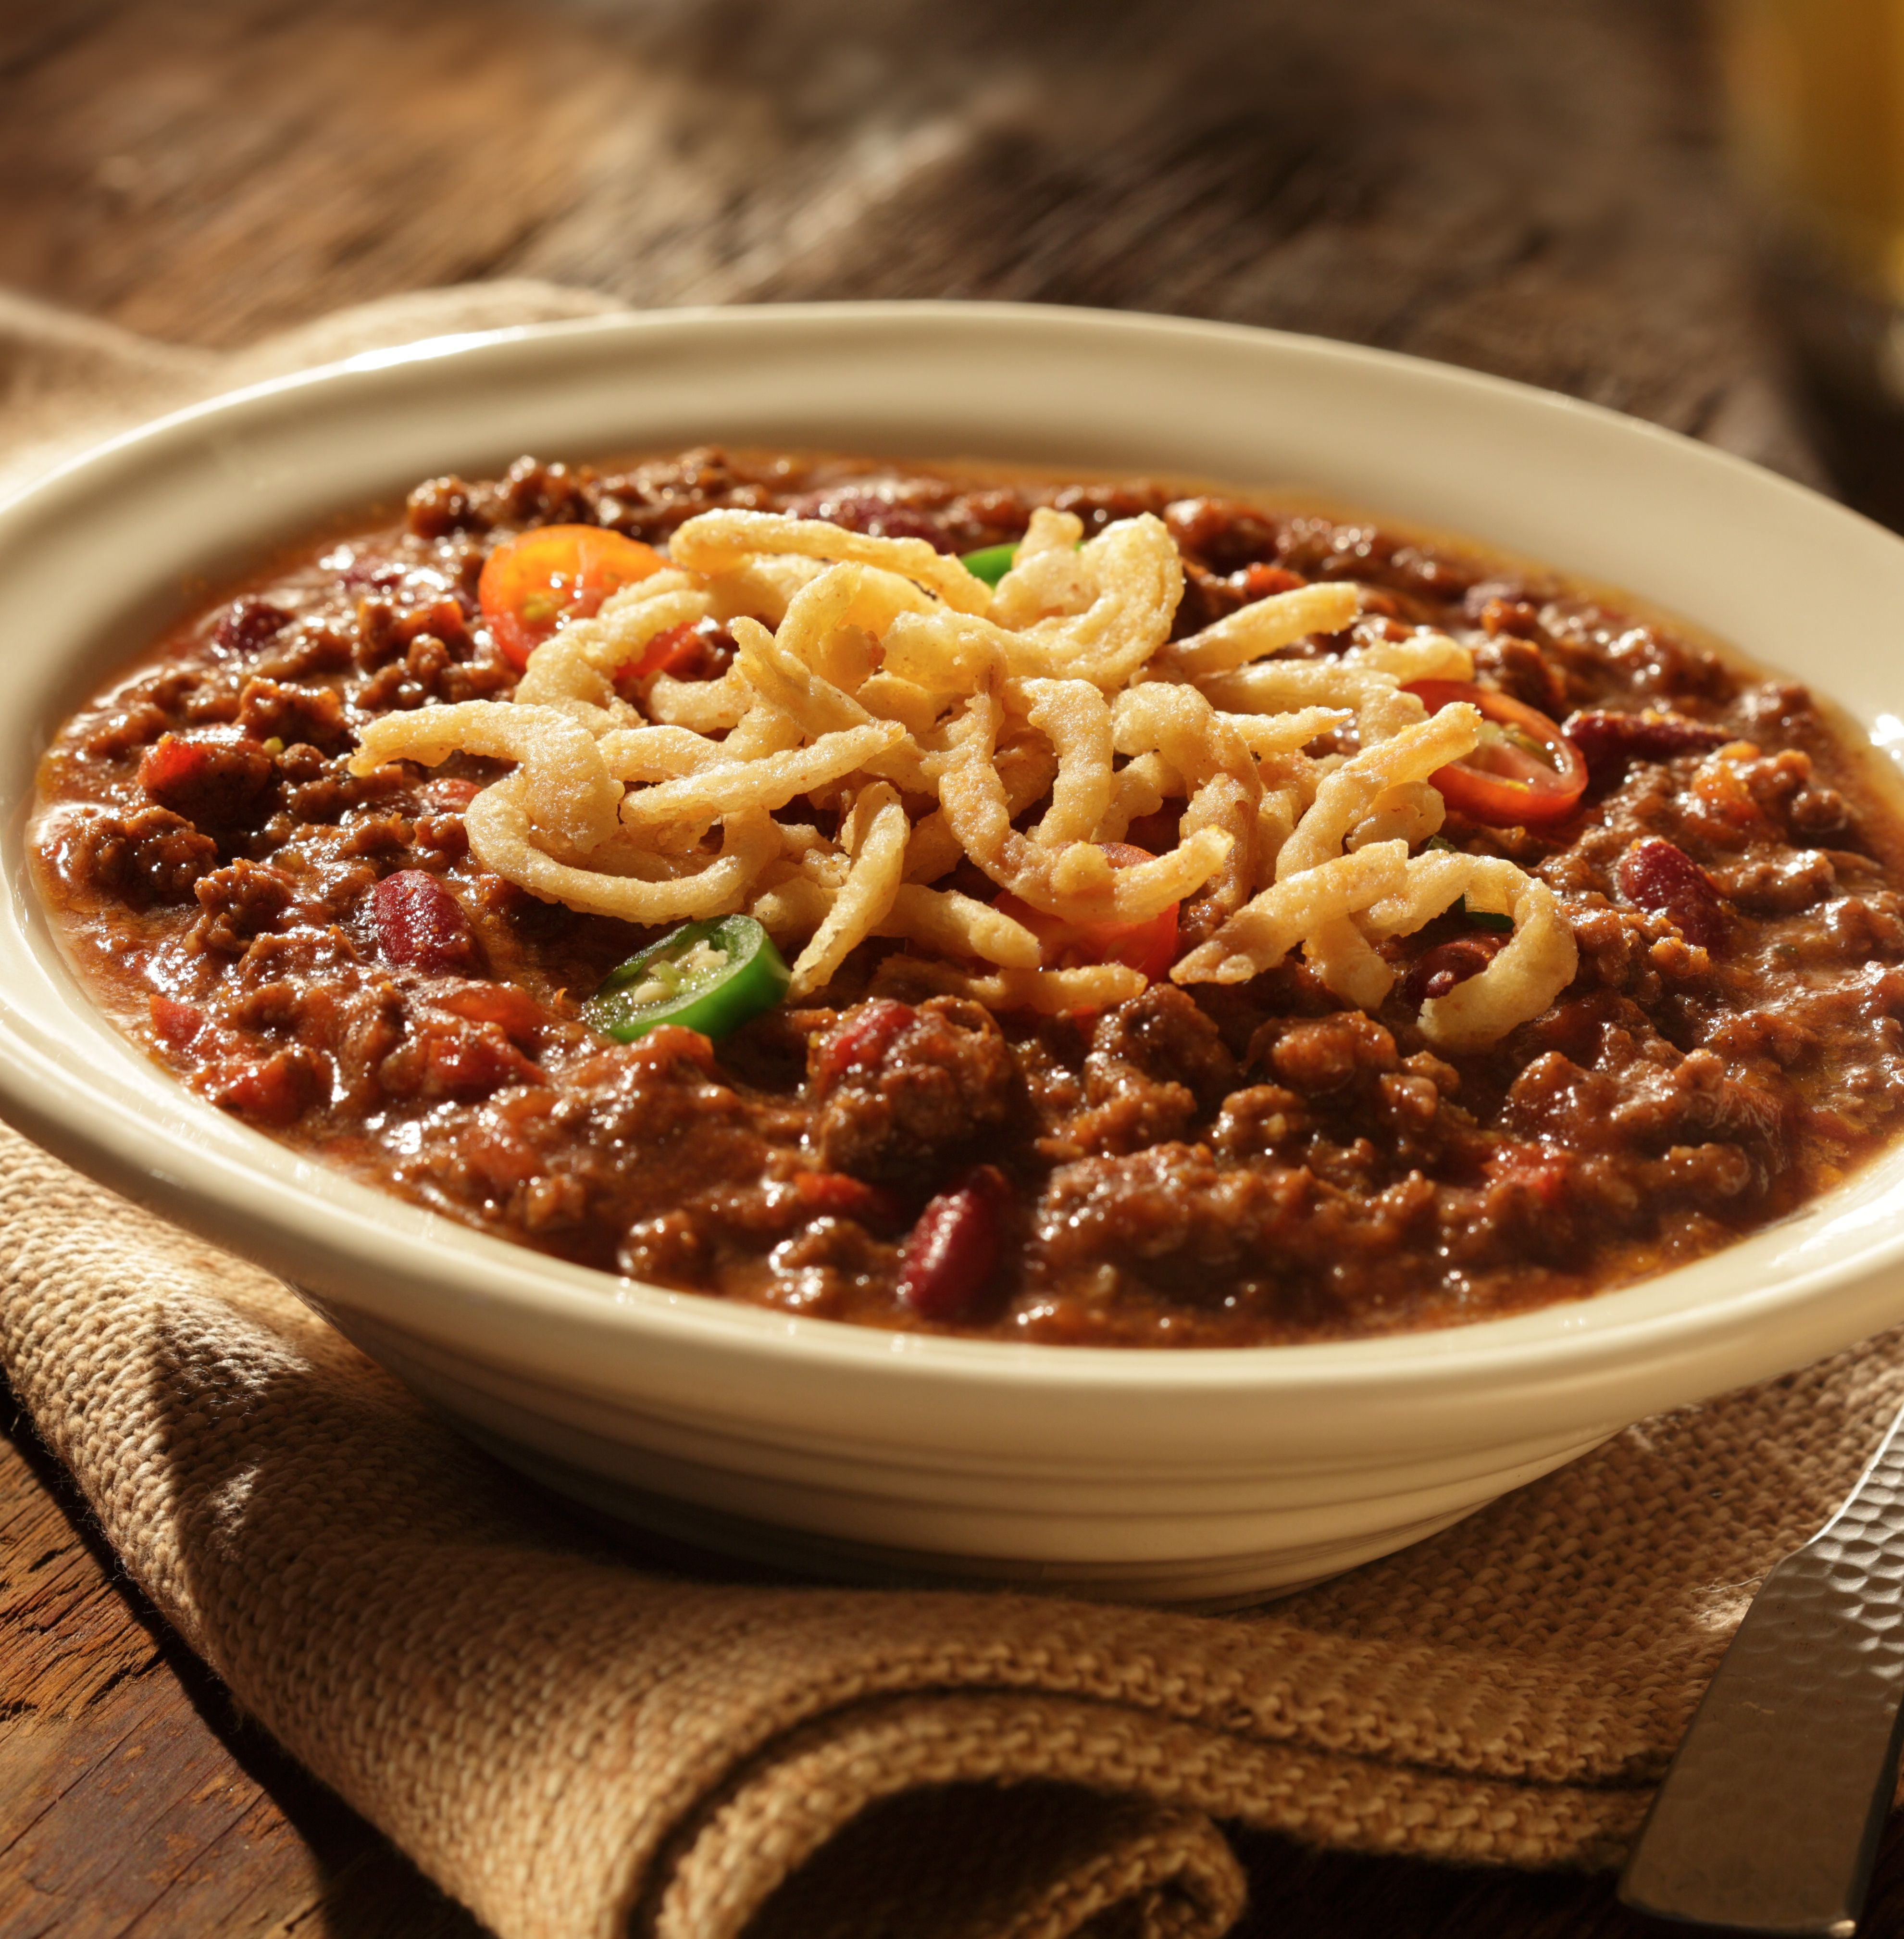 Crunchy Onion Chili Recipe Slow Cooker Chili Recipes Fried Onions